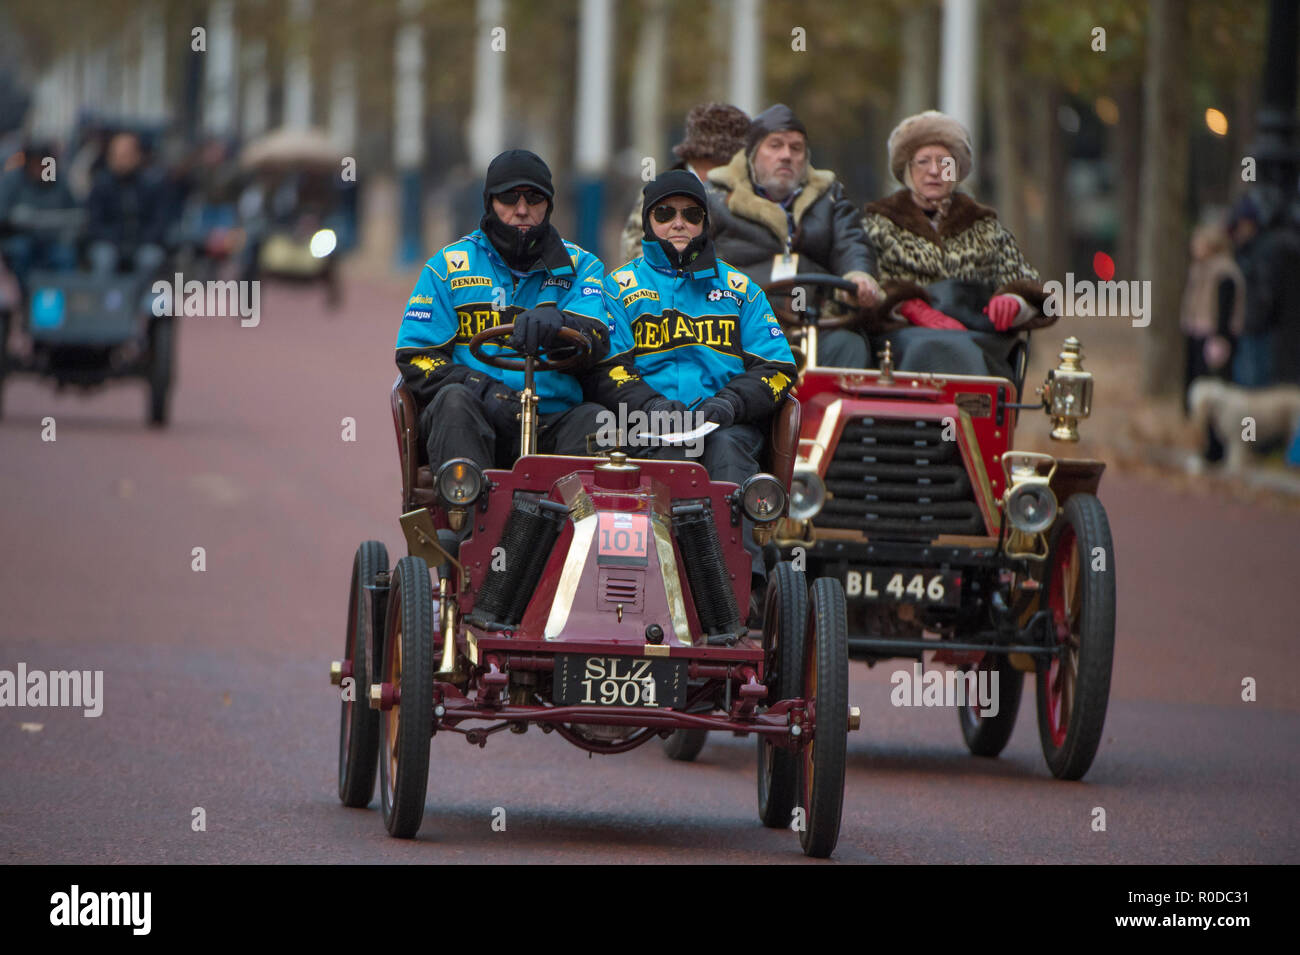 The Mall, London, UK. 4 November, 2018. Bonhams London to Brighton Veteran Car Run 2018, vehicles trundle down The Mall after the sunrise start in Hyde Park at 06.59am. The longest running motoring event in the world, with 400 veteran vehicles starting the 60 mile journey to the south coast, and the first car due to arrive at 09.59am. Credit: Malcolm Park/Alamy Live News. - Stock Image